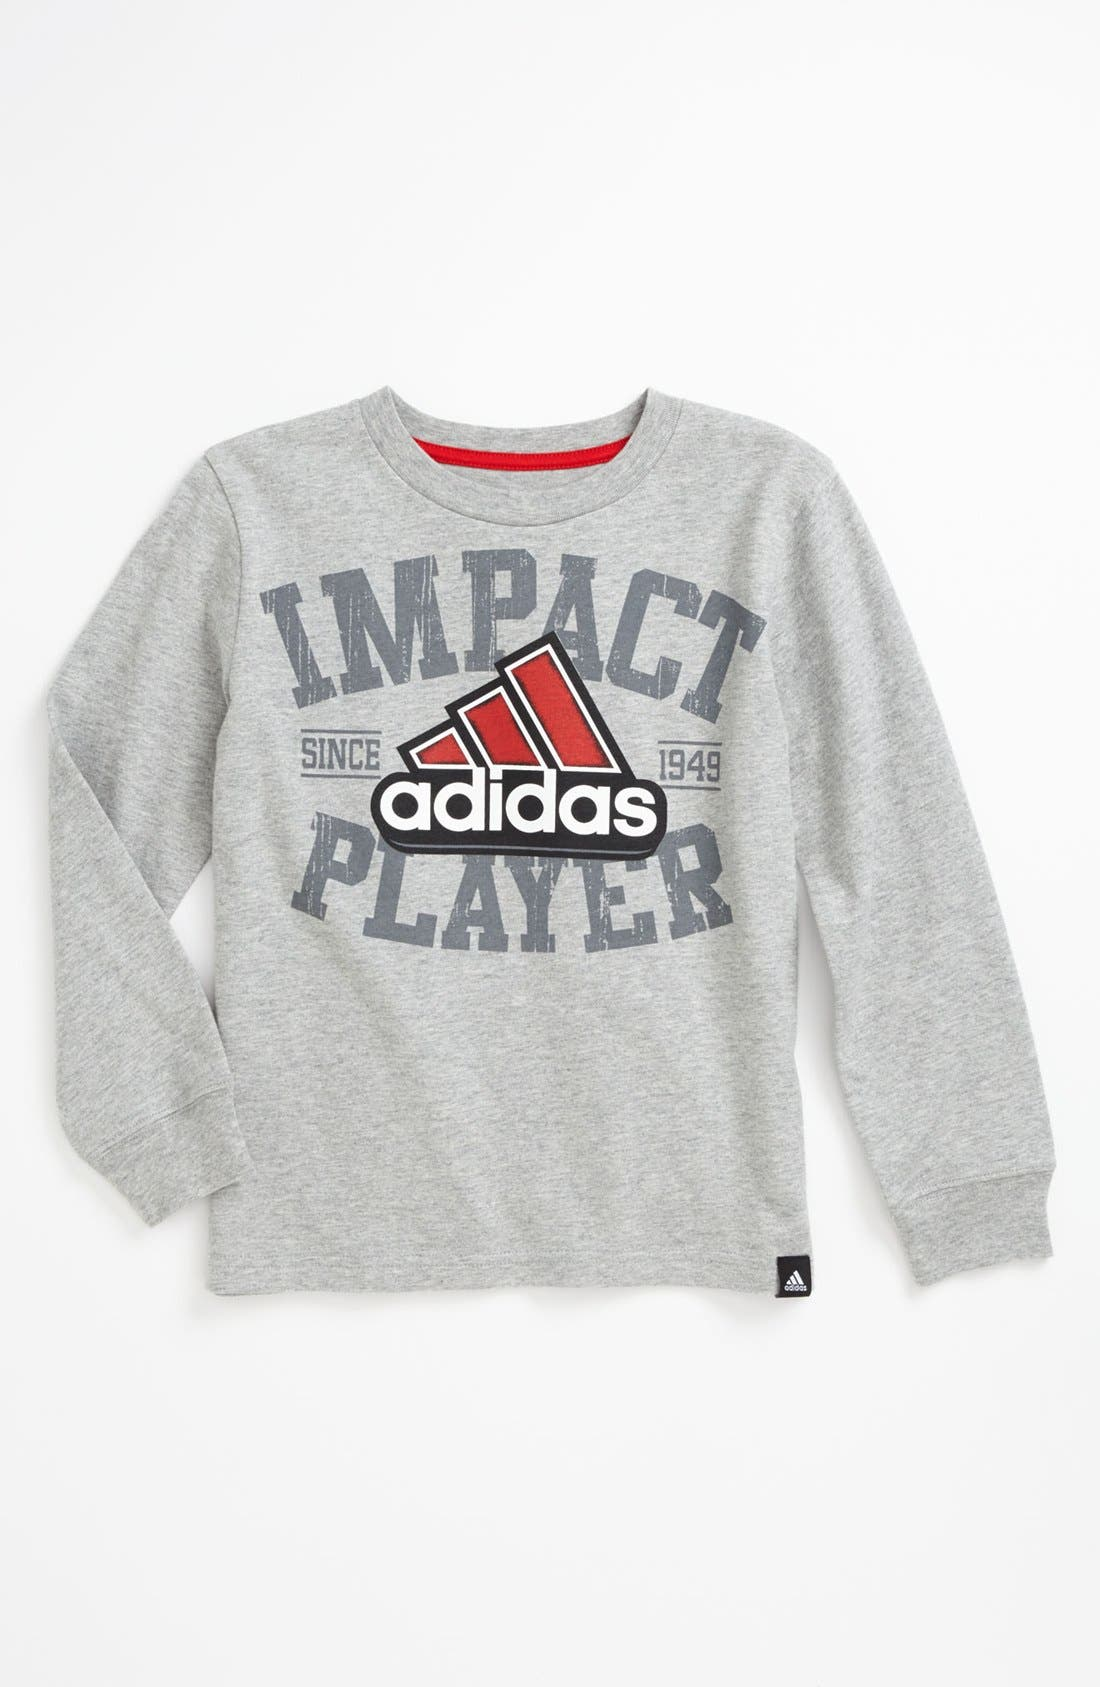 Main Image - adidas 'Impact Player' T-Shirt (Little Boys)